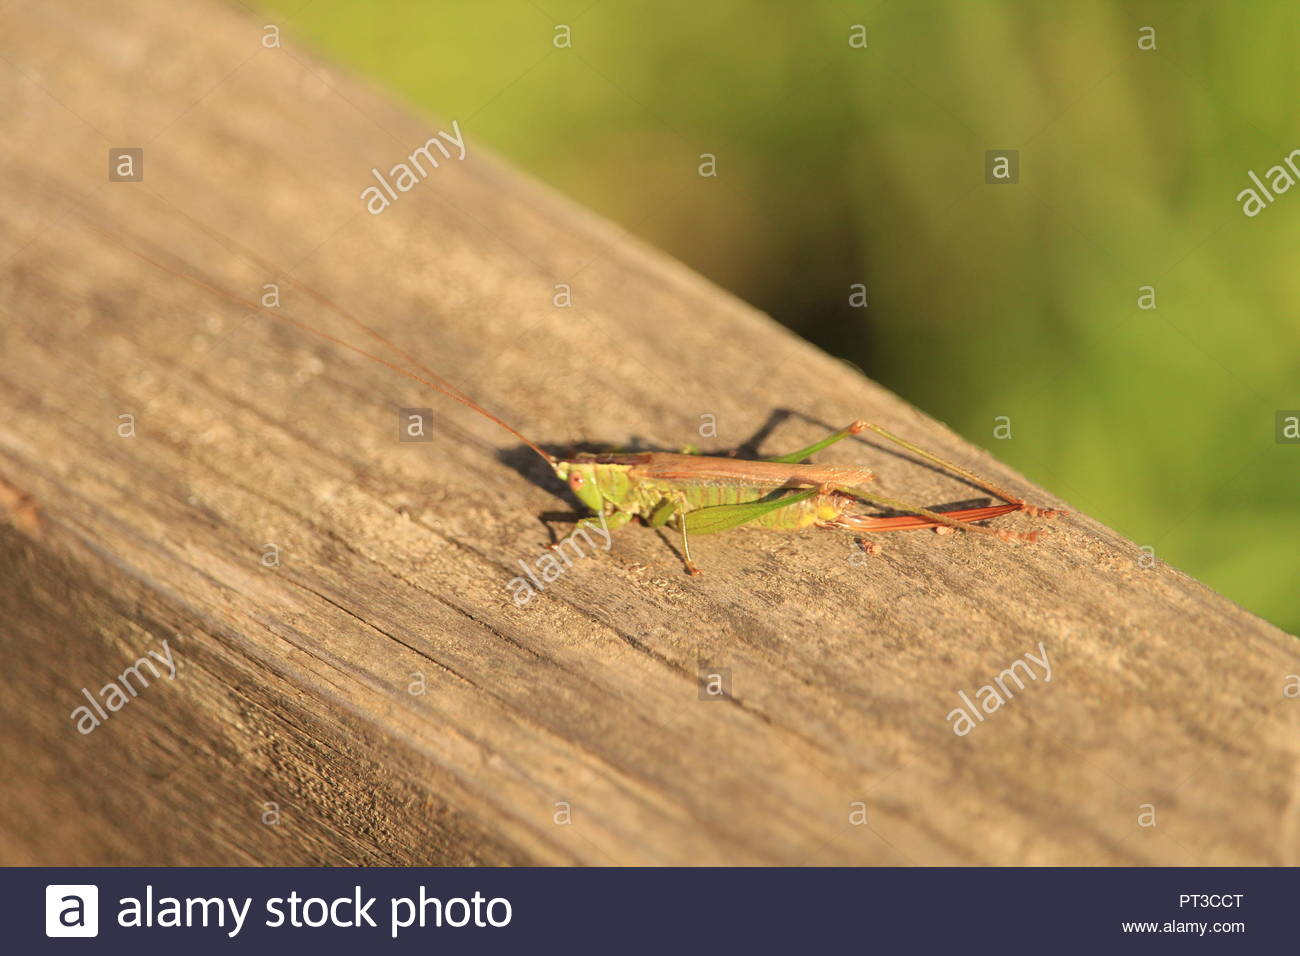 Insect Insects Grasshopper Grasshoppers Cricket Crickets Nature